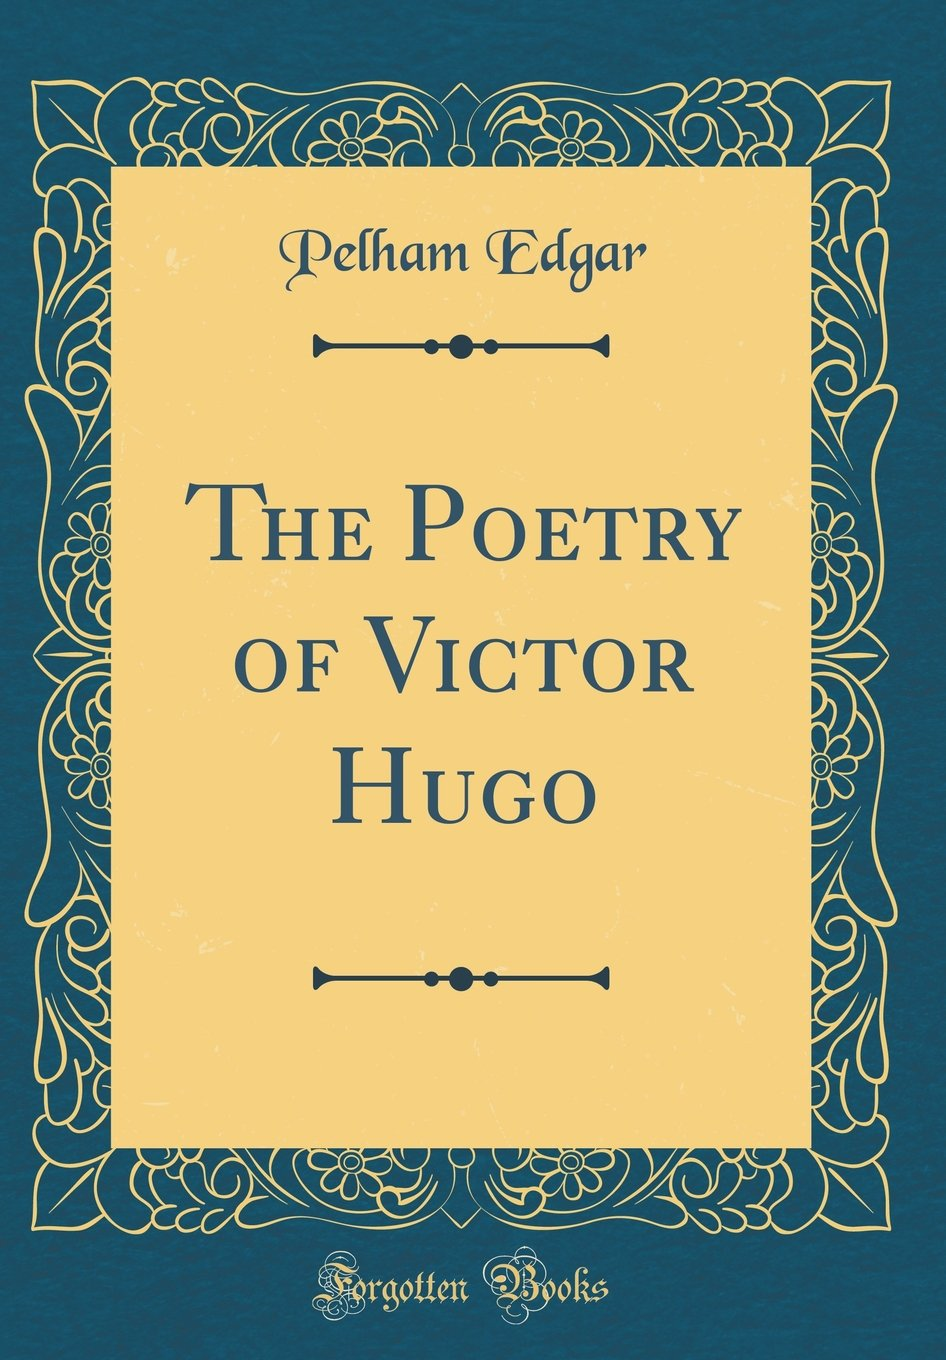 Poems of Victor Hugo A Bilingual Edition french poems about love and life